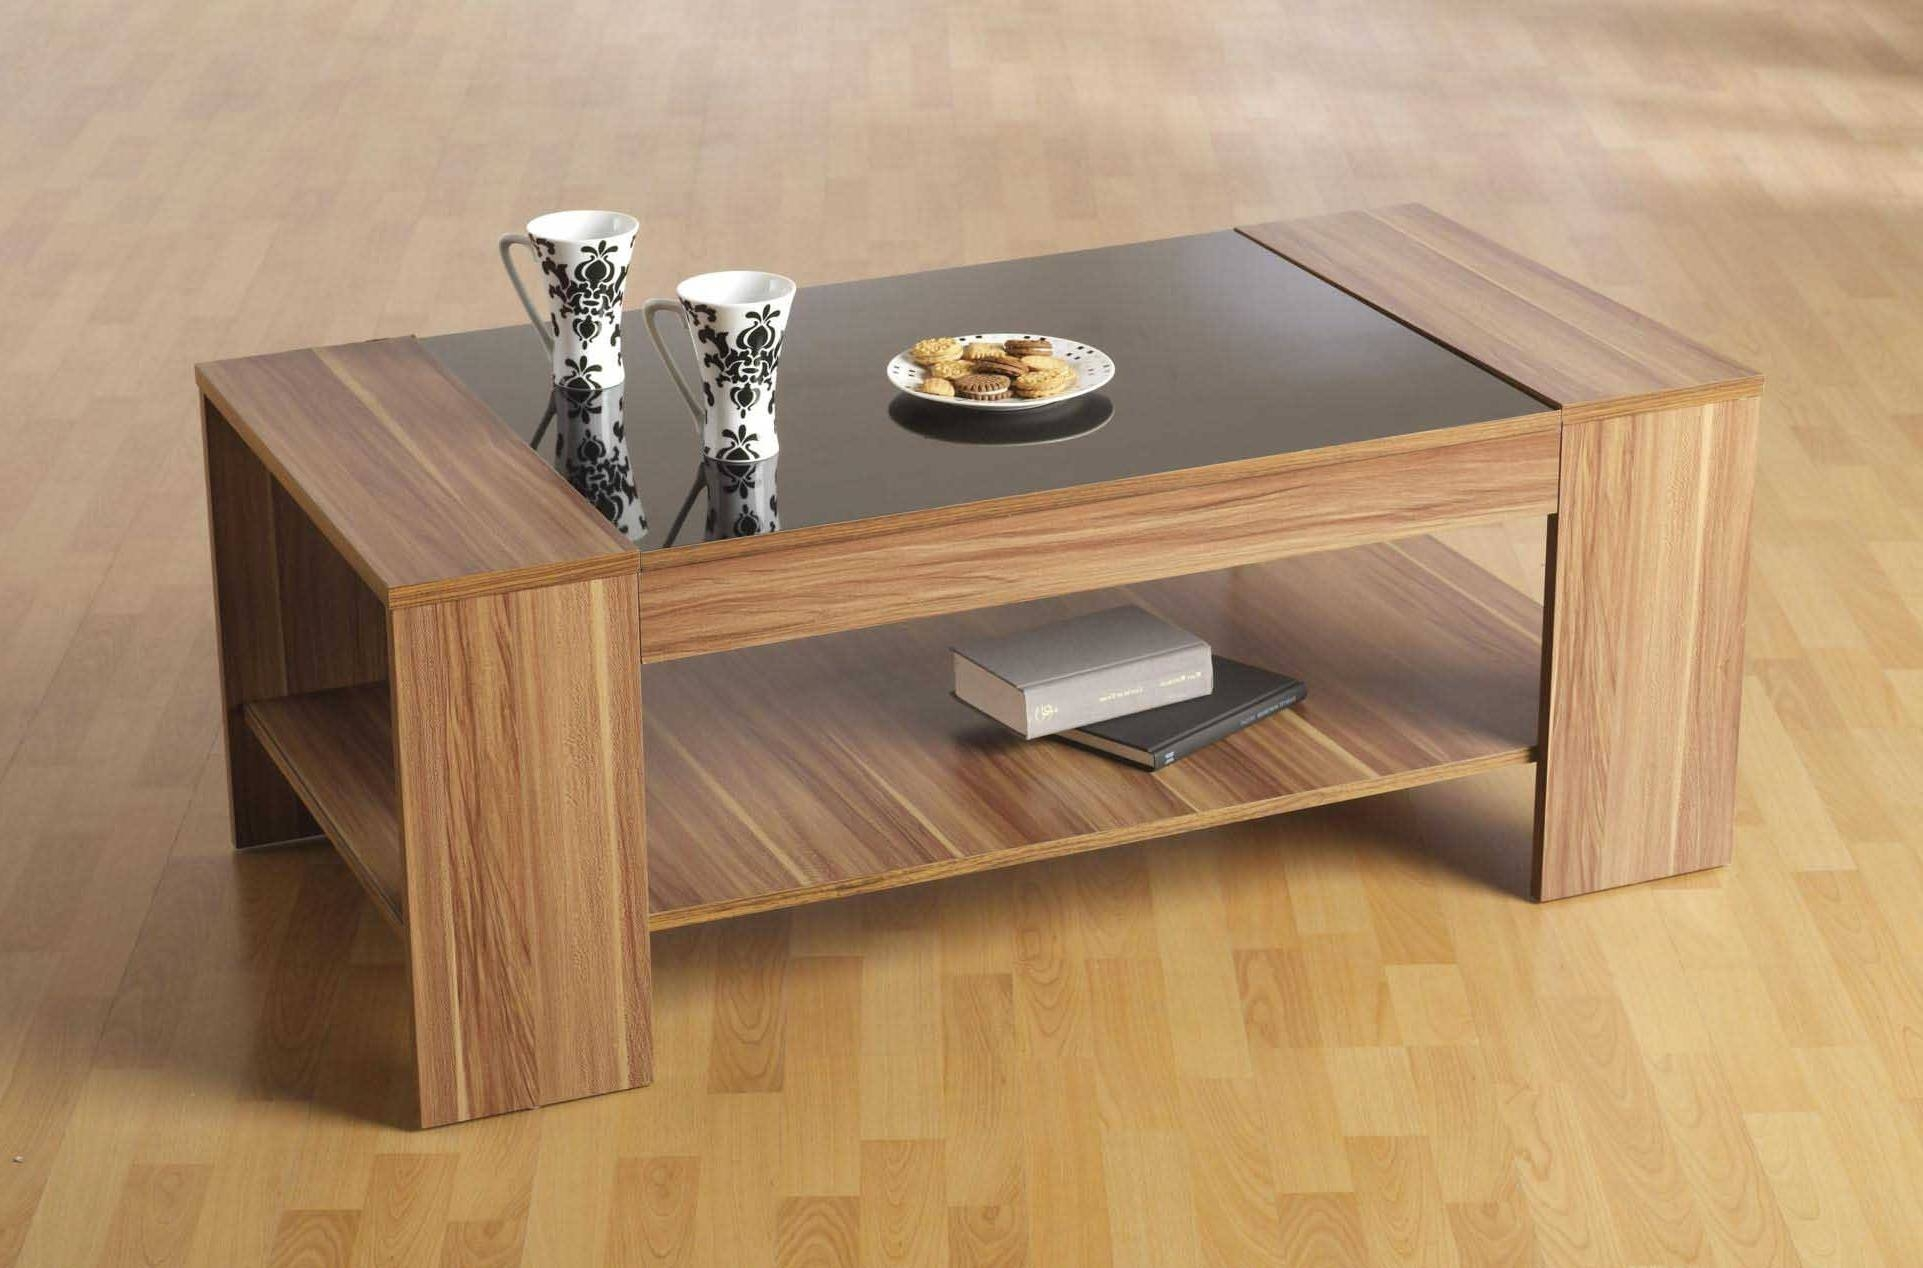 Extraordinary Wooden Coffee Table Designs With Glass Top – Wooden with regard to Glass Top Storage Coffee Tables (Image 14 of 30)